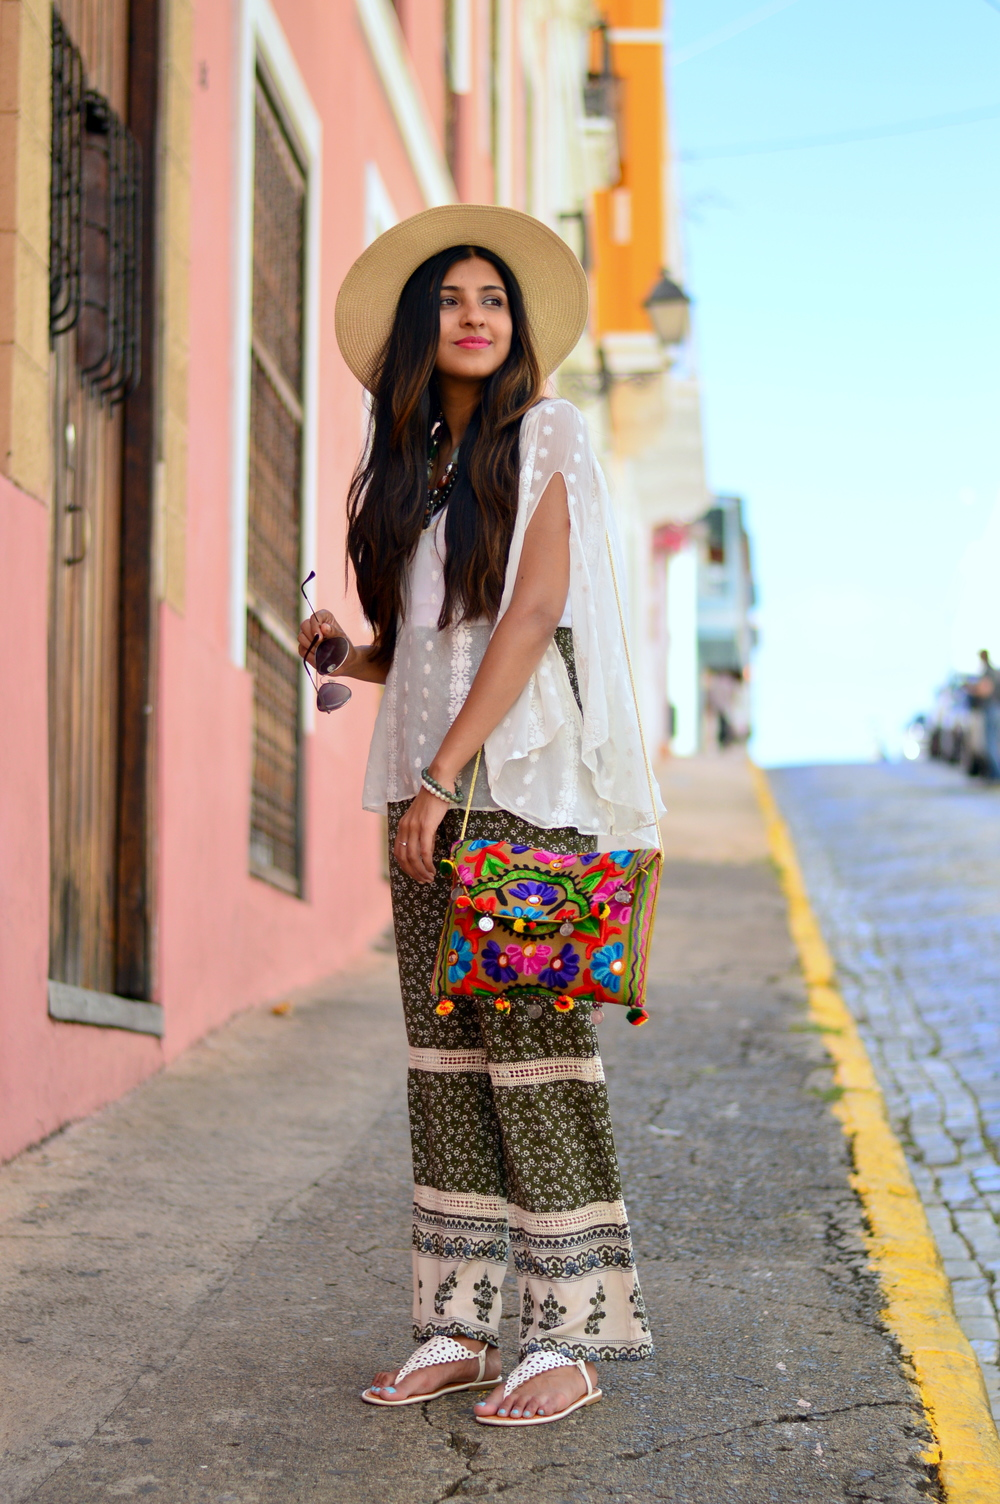 Hippie Chic: Old San Juan, Puerto Rico — Miss Minus Sized